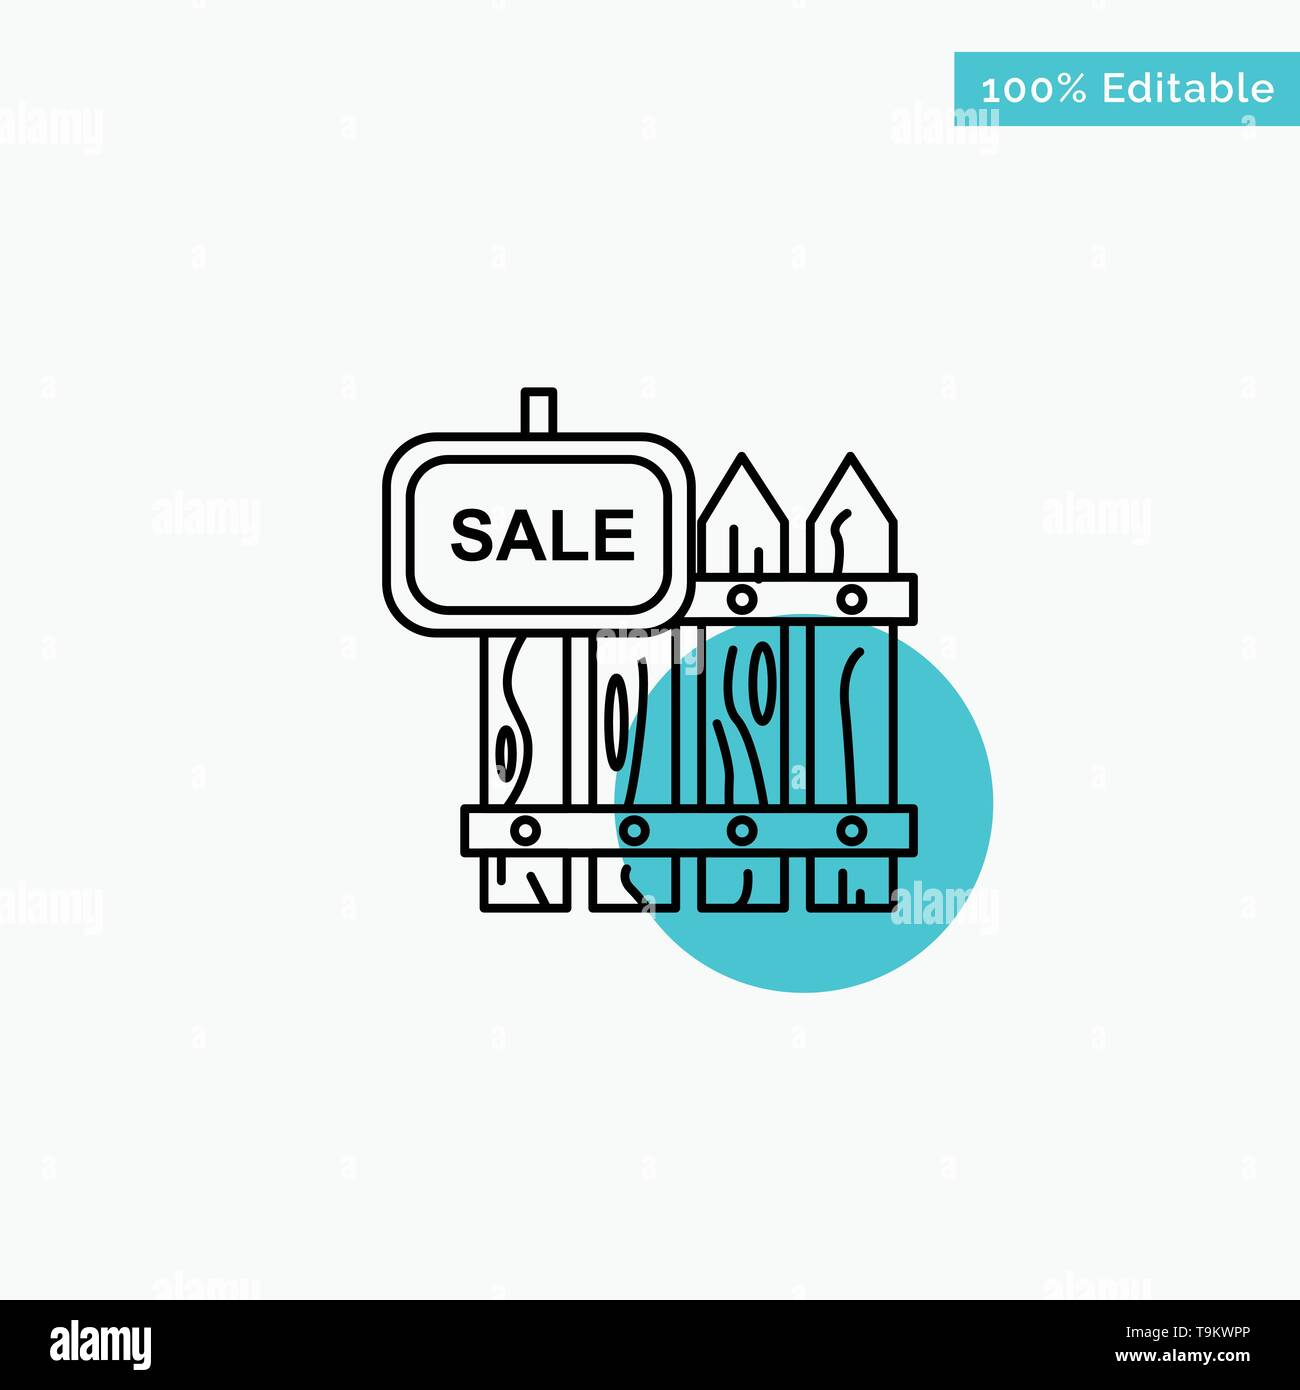 Fence, Wood, Realty, Sale, Garden, House turquoise highlight circle point Vector icon - Stock Image